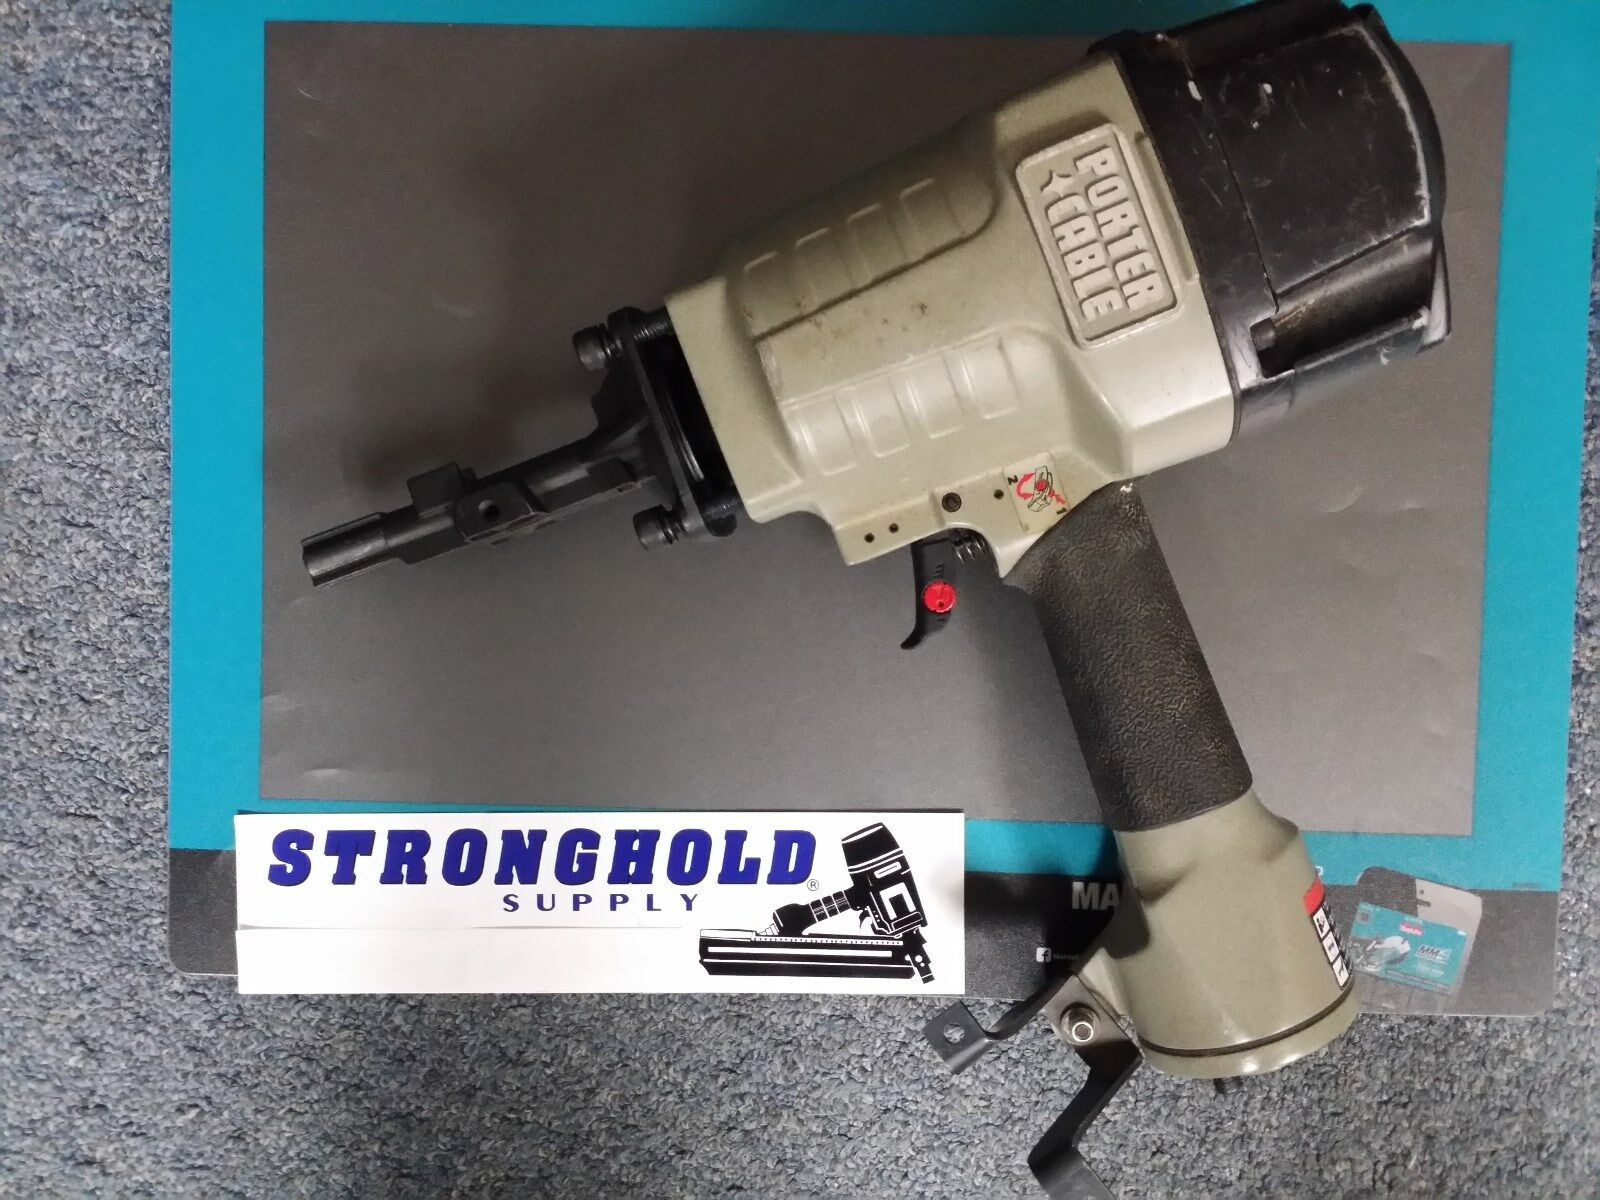 USED 901387 HOUSING FOR FR350 T3 NAILER-ENTIRE PICTURE PICTURE PICTURE NOT FOR SALE bd6f68